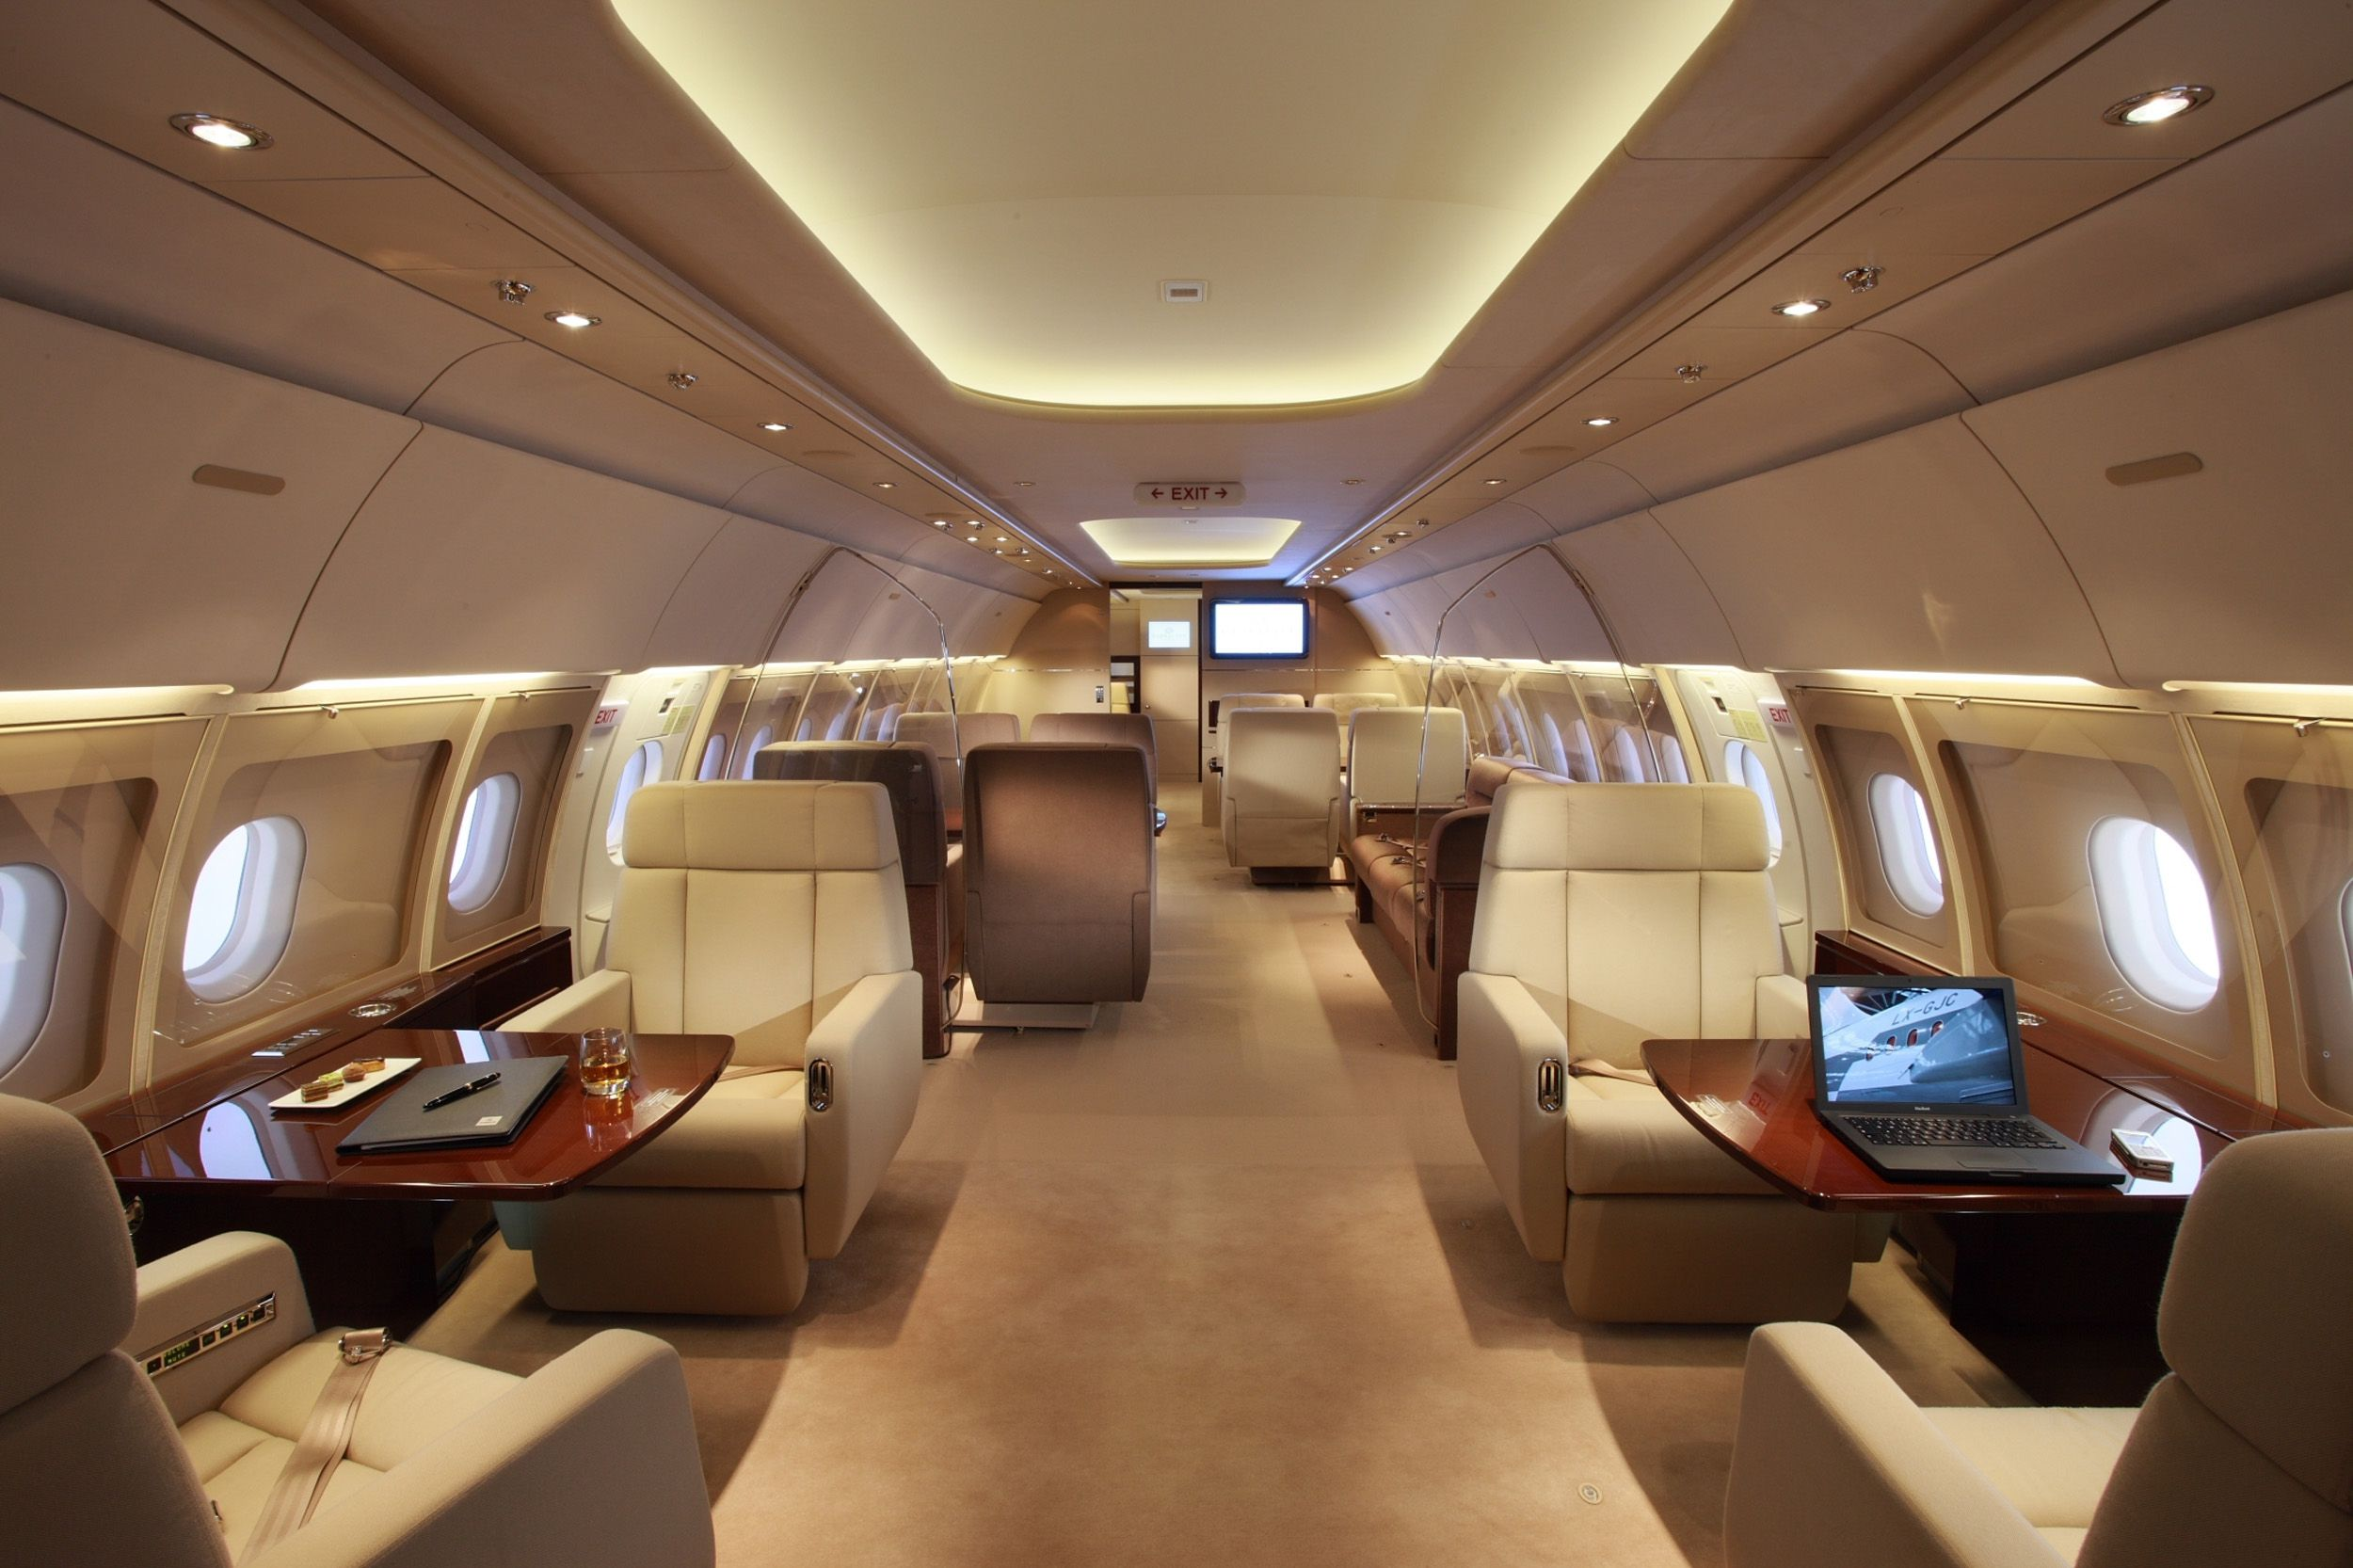 Airbus-Corporate-jet-private-jet-interior-cabin.jpg